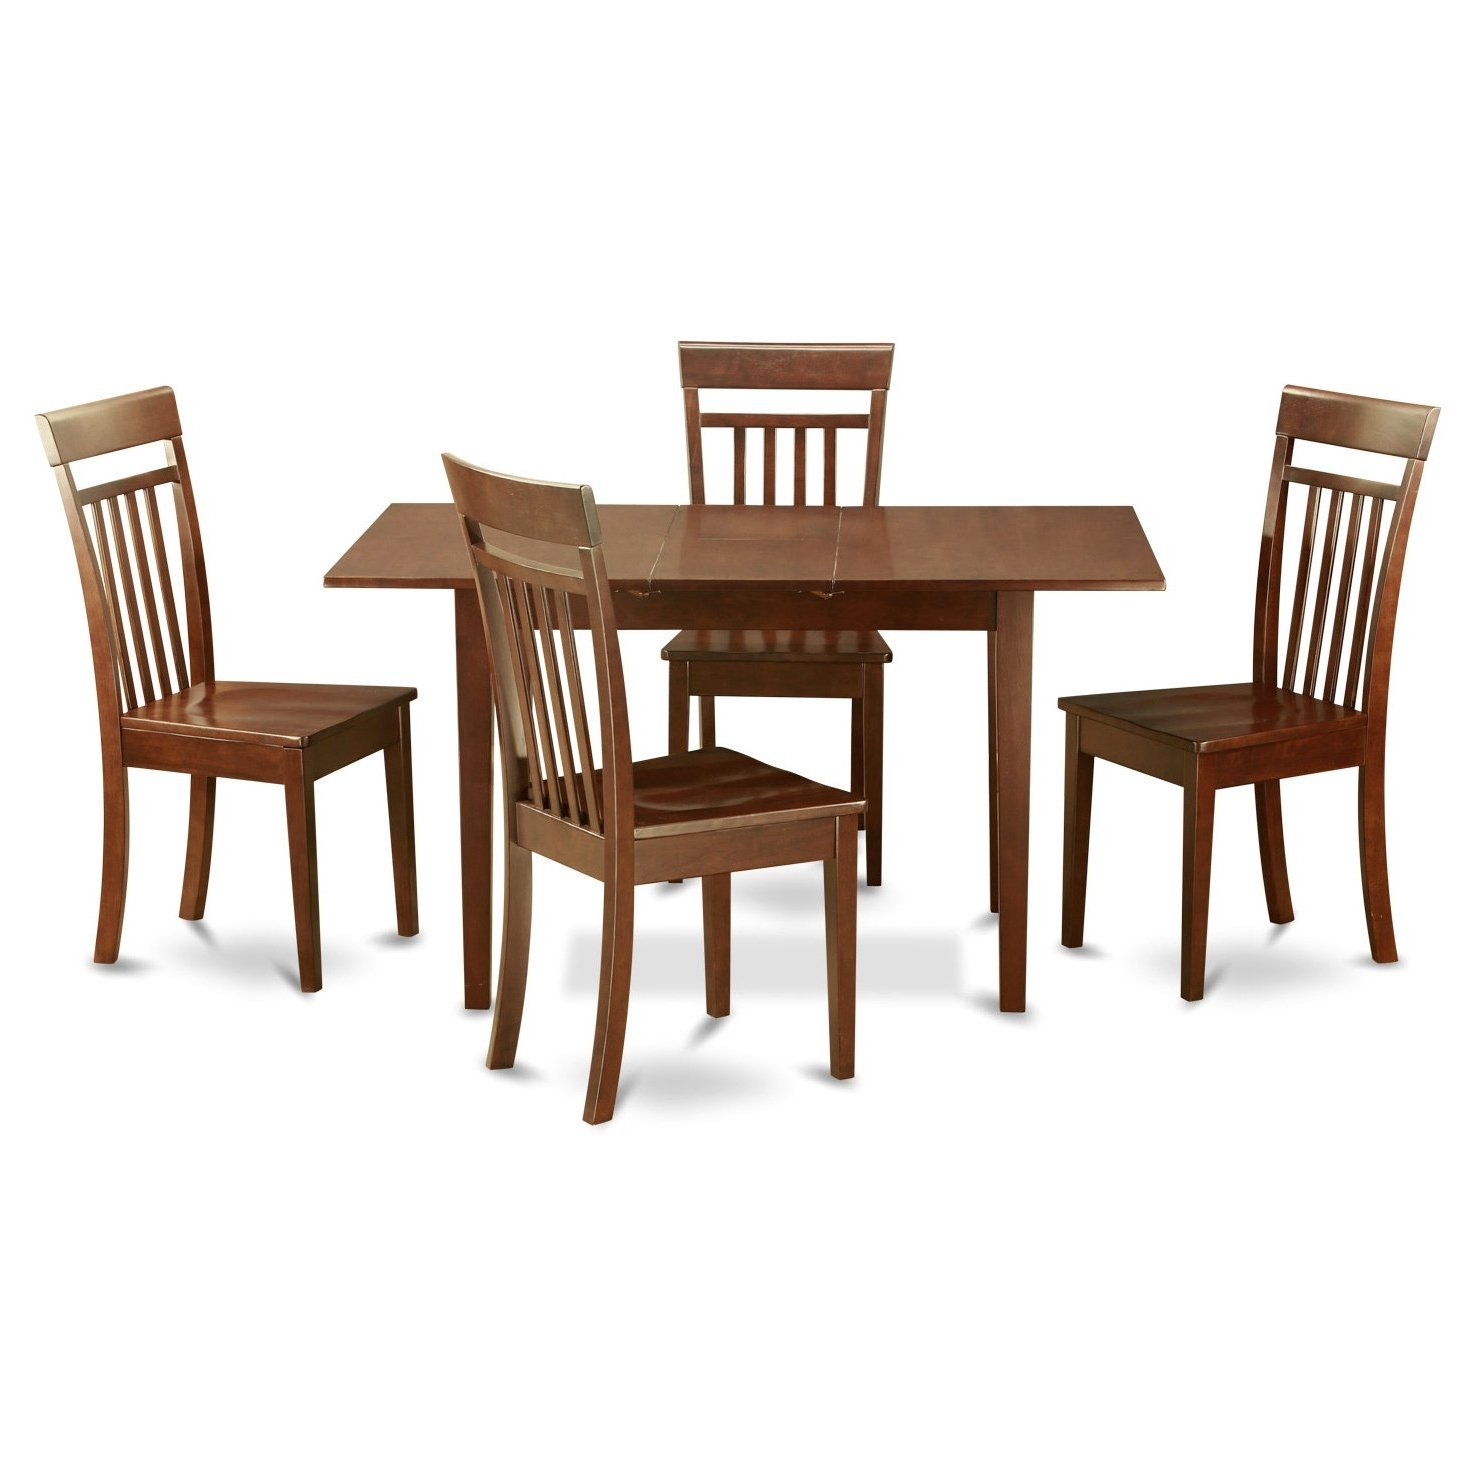 Trendy Mahogany Dining Room Table And 4 Dining Room Chairs Chairs 5 Piece Intended For Mahogany Dining Table Sets (View 19 of 25)